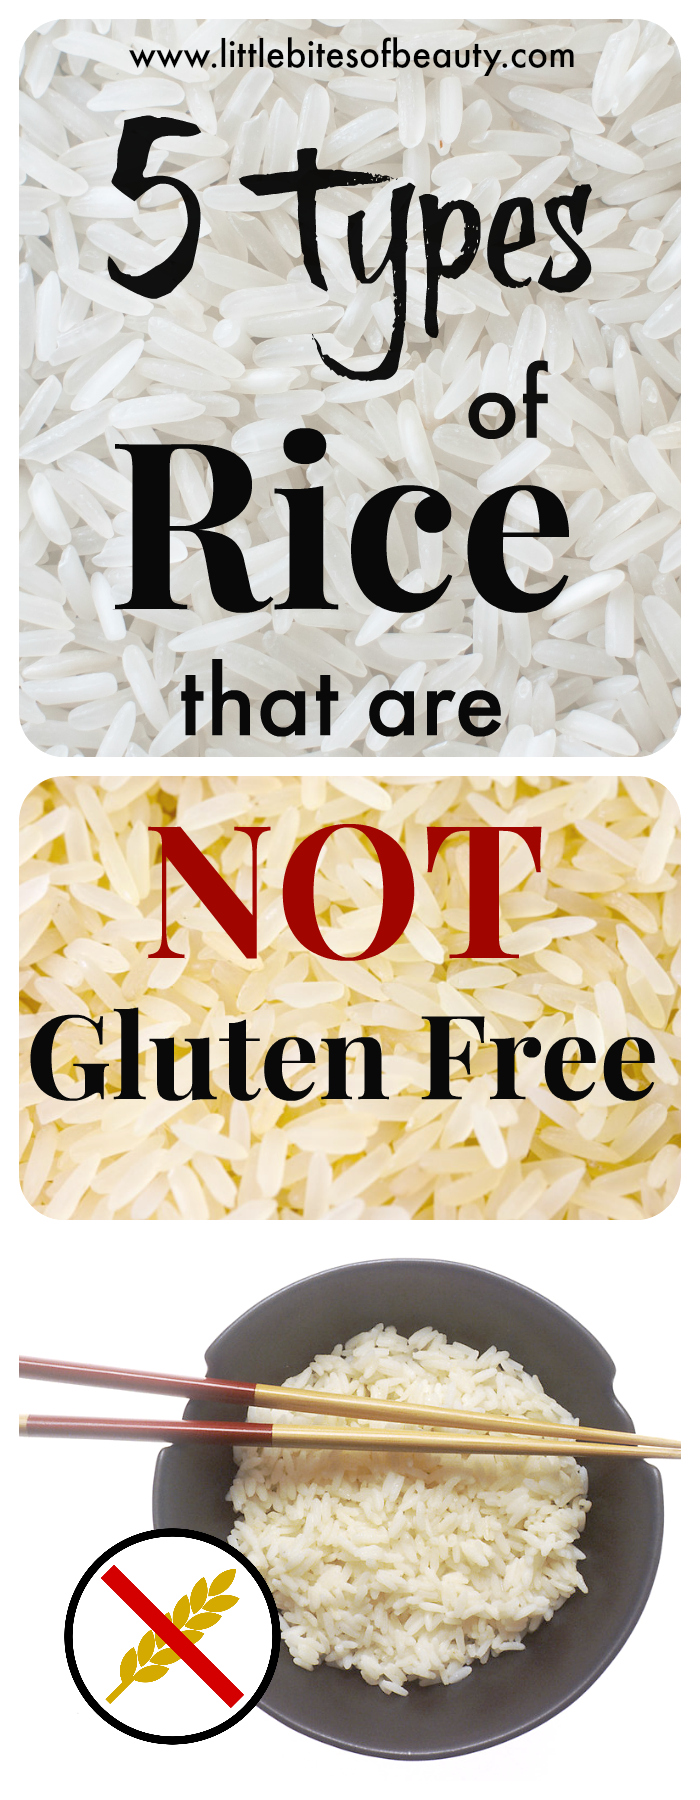 5 Types of Rice That Are NOT Gluten Free - Little Bites of